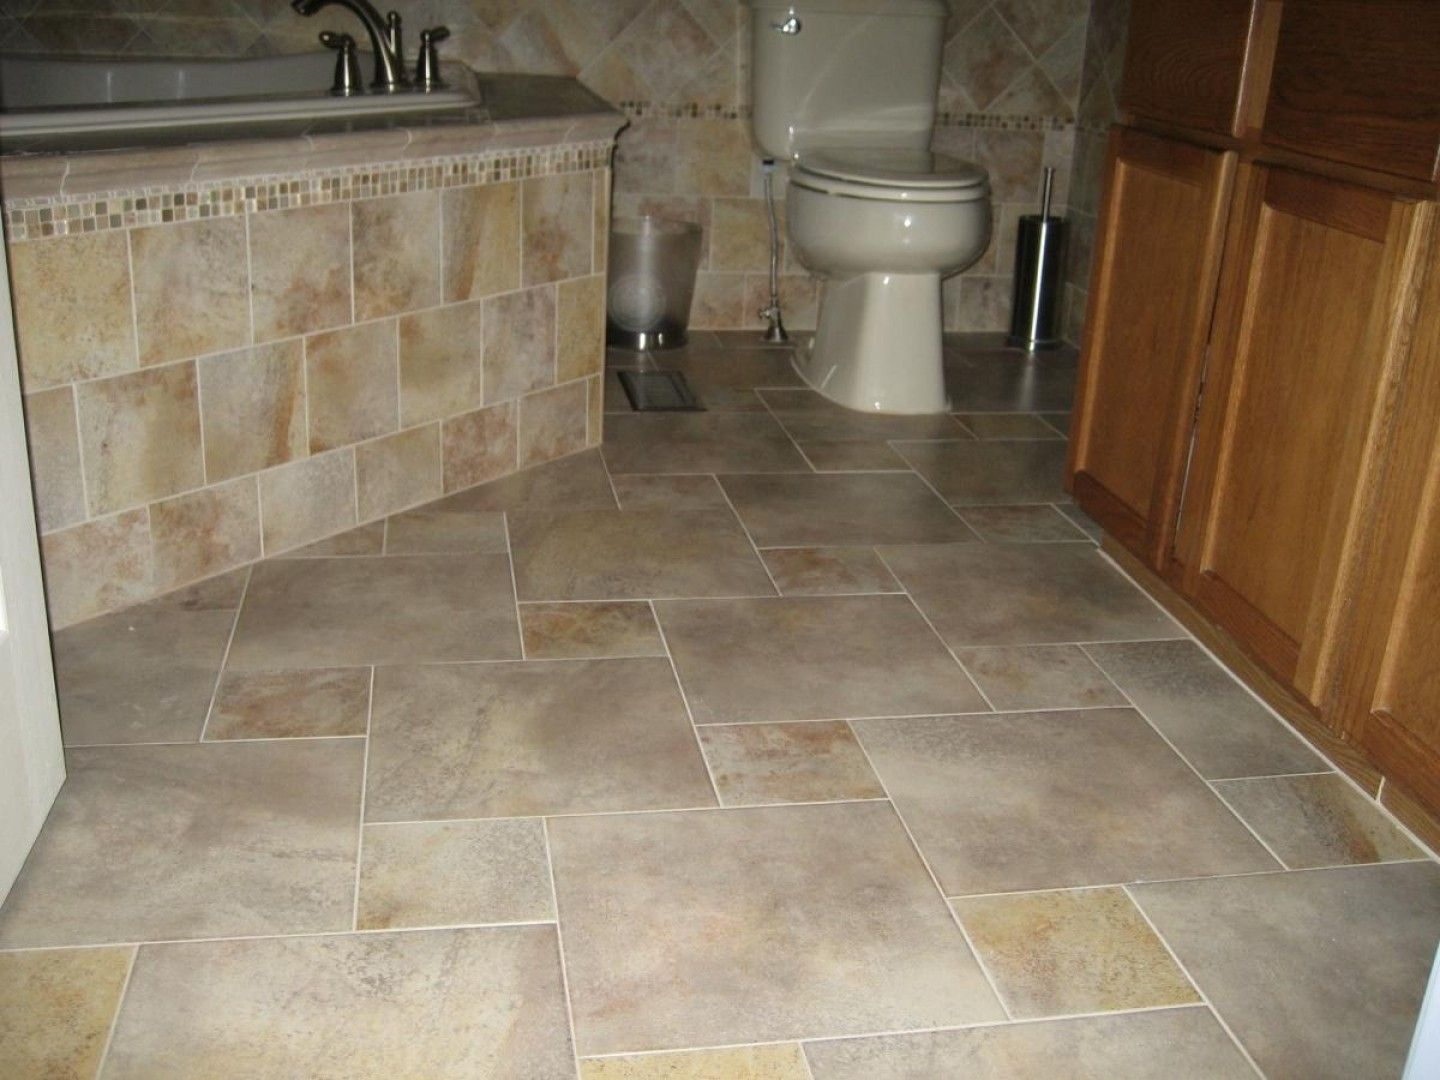 Bathroom Floor Tile Layout Patterns | kitchen | Pinterest ...